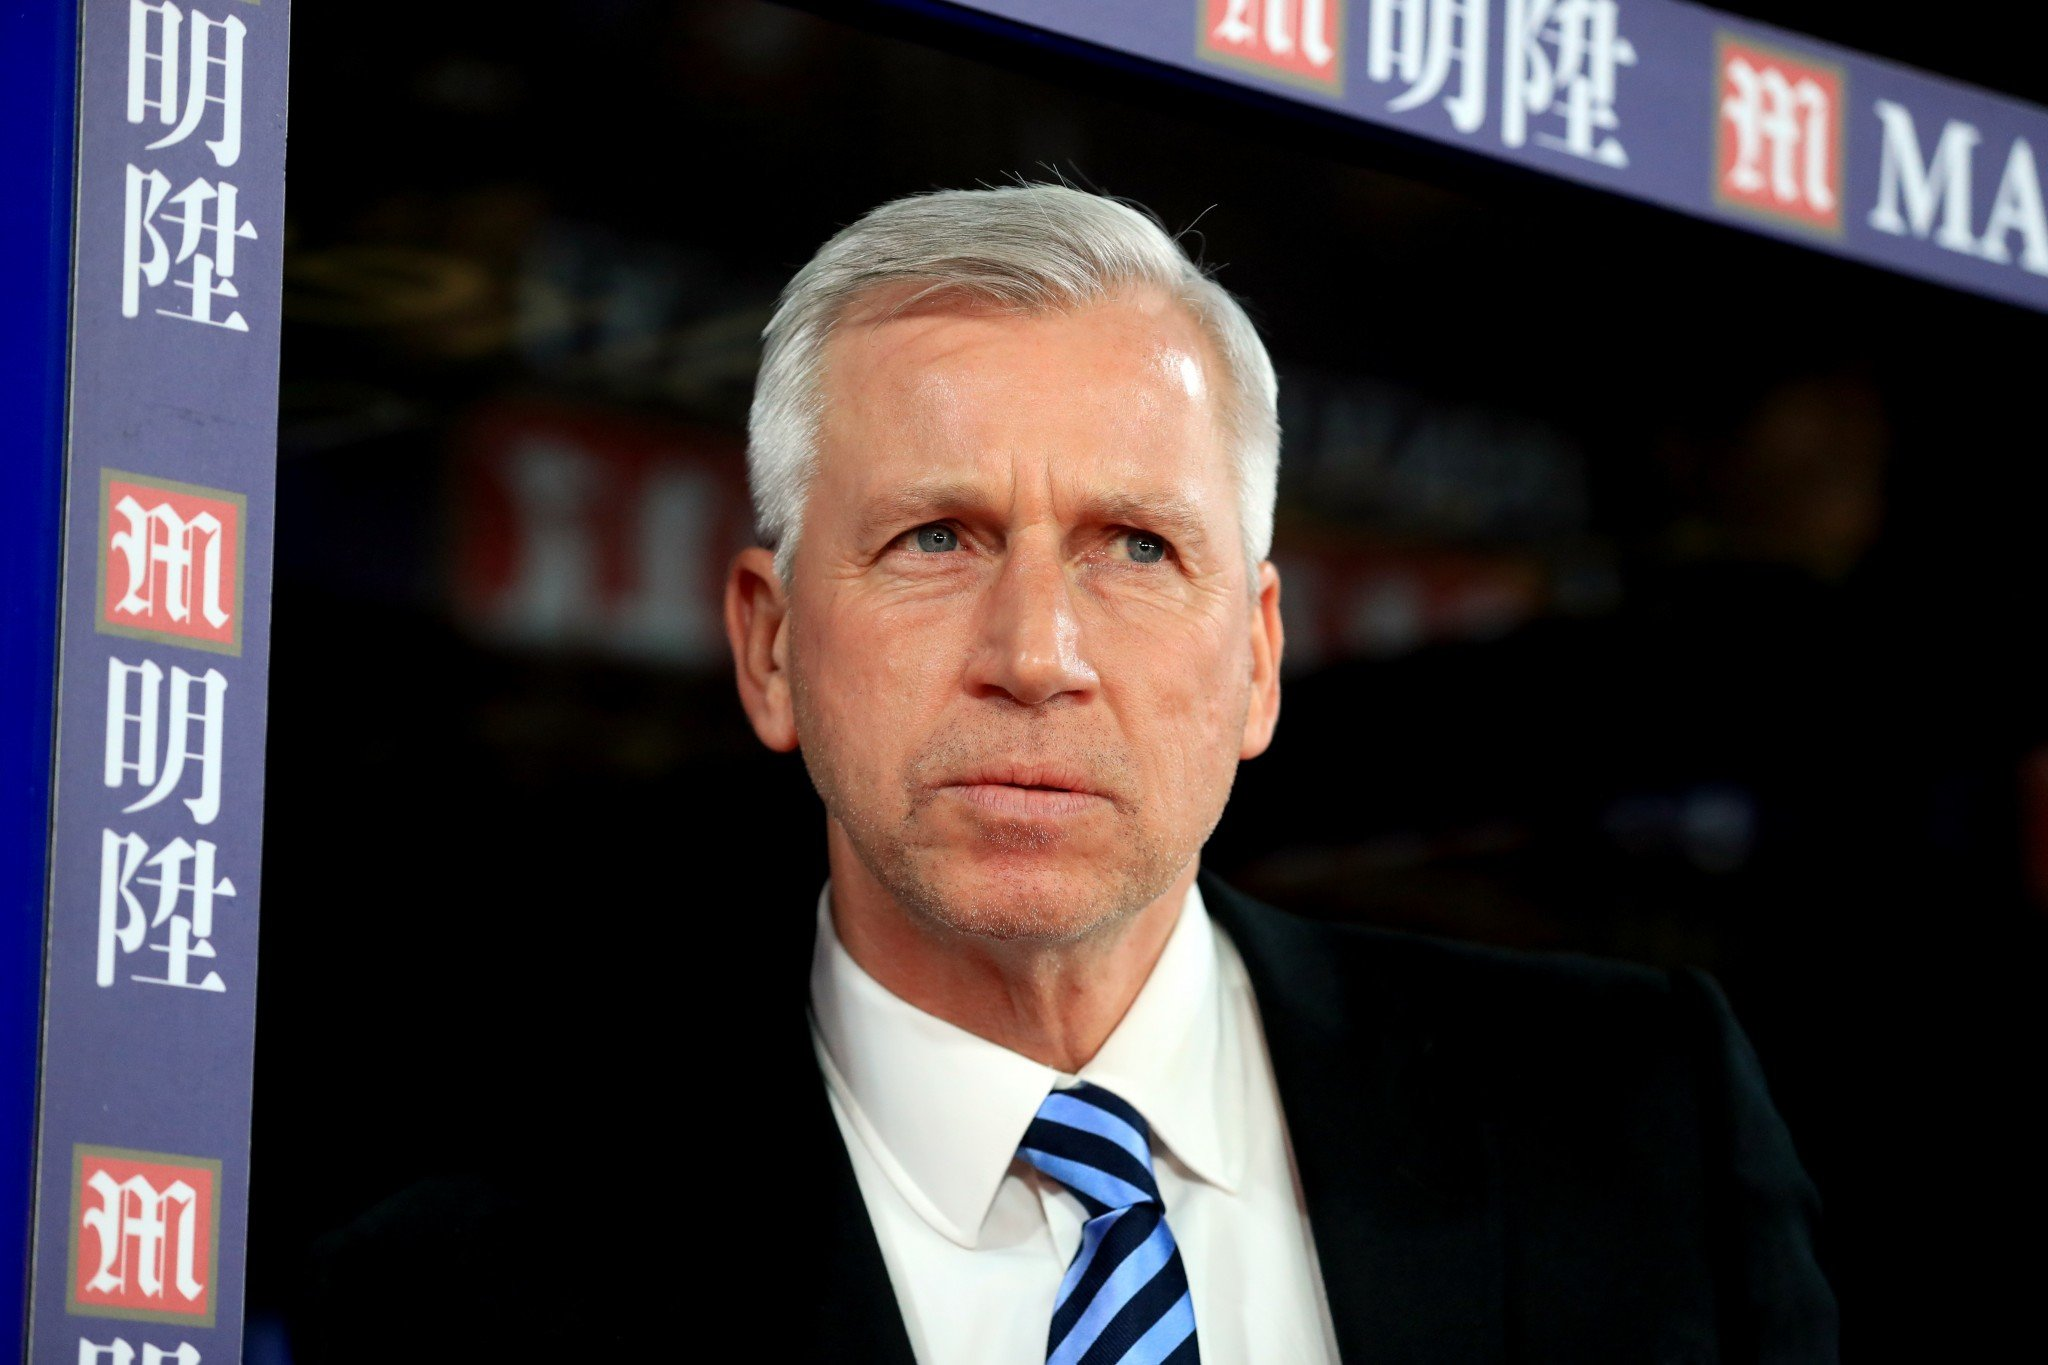 Alan Pardew has been sacked less than two years after being appointed